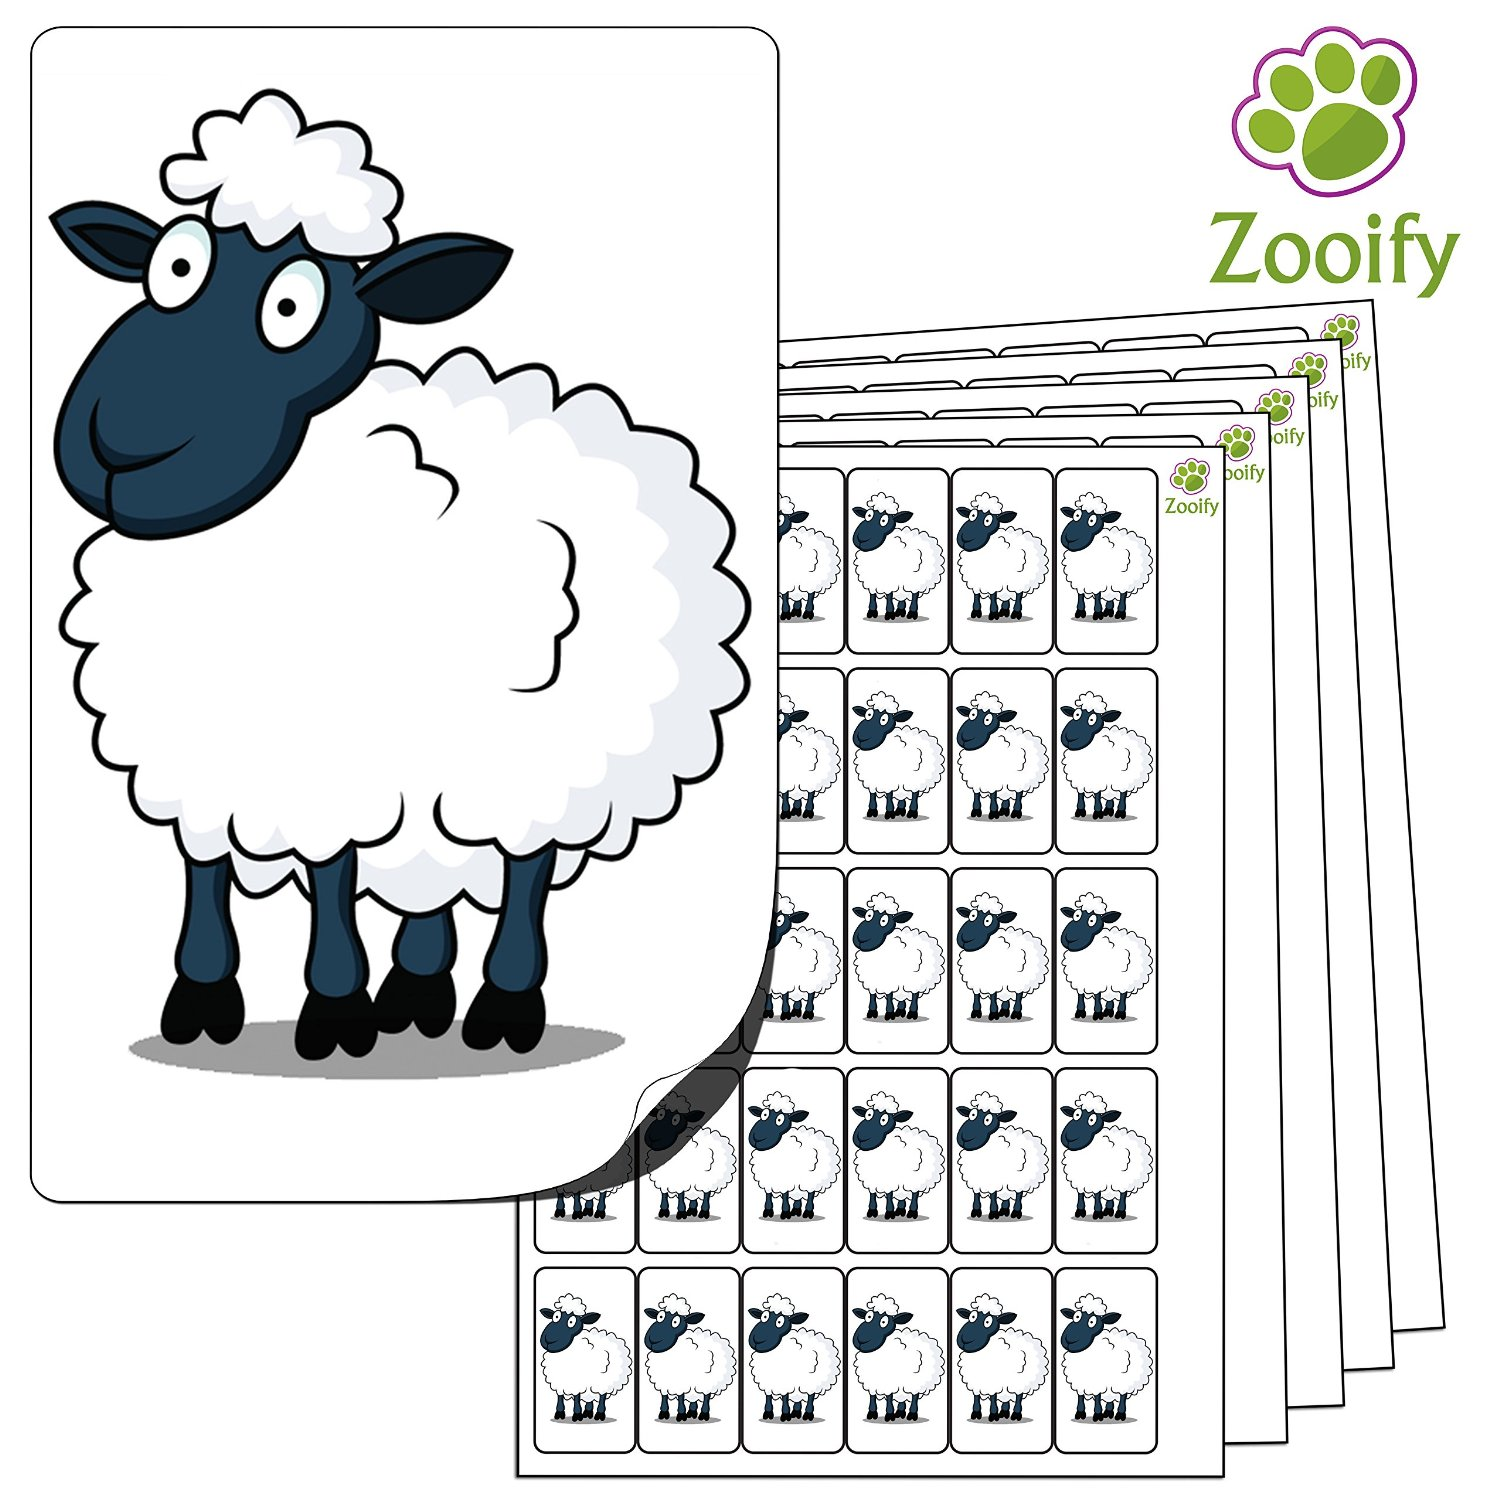 480x Sheep Stickers (38 x 21mm) High Quality Self Adhesive Animal Labels By Zooify